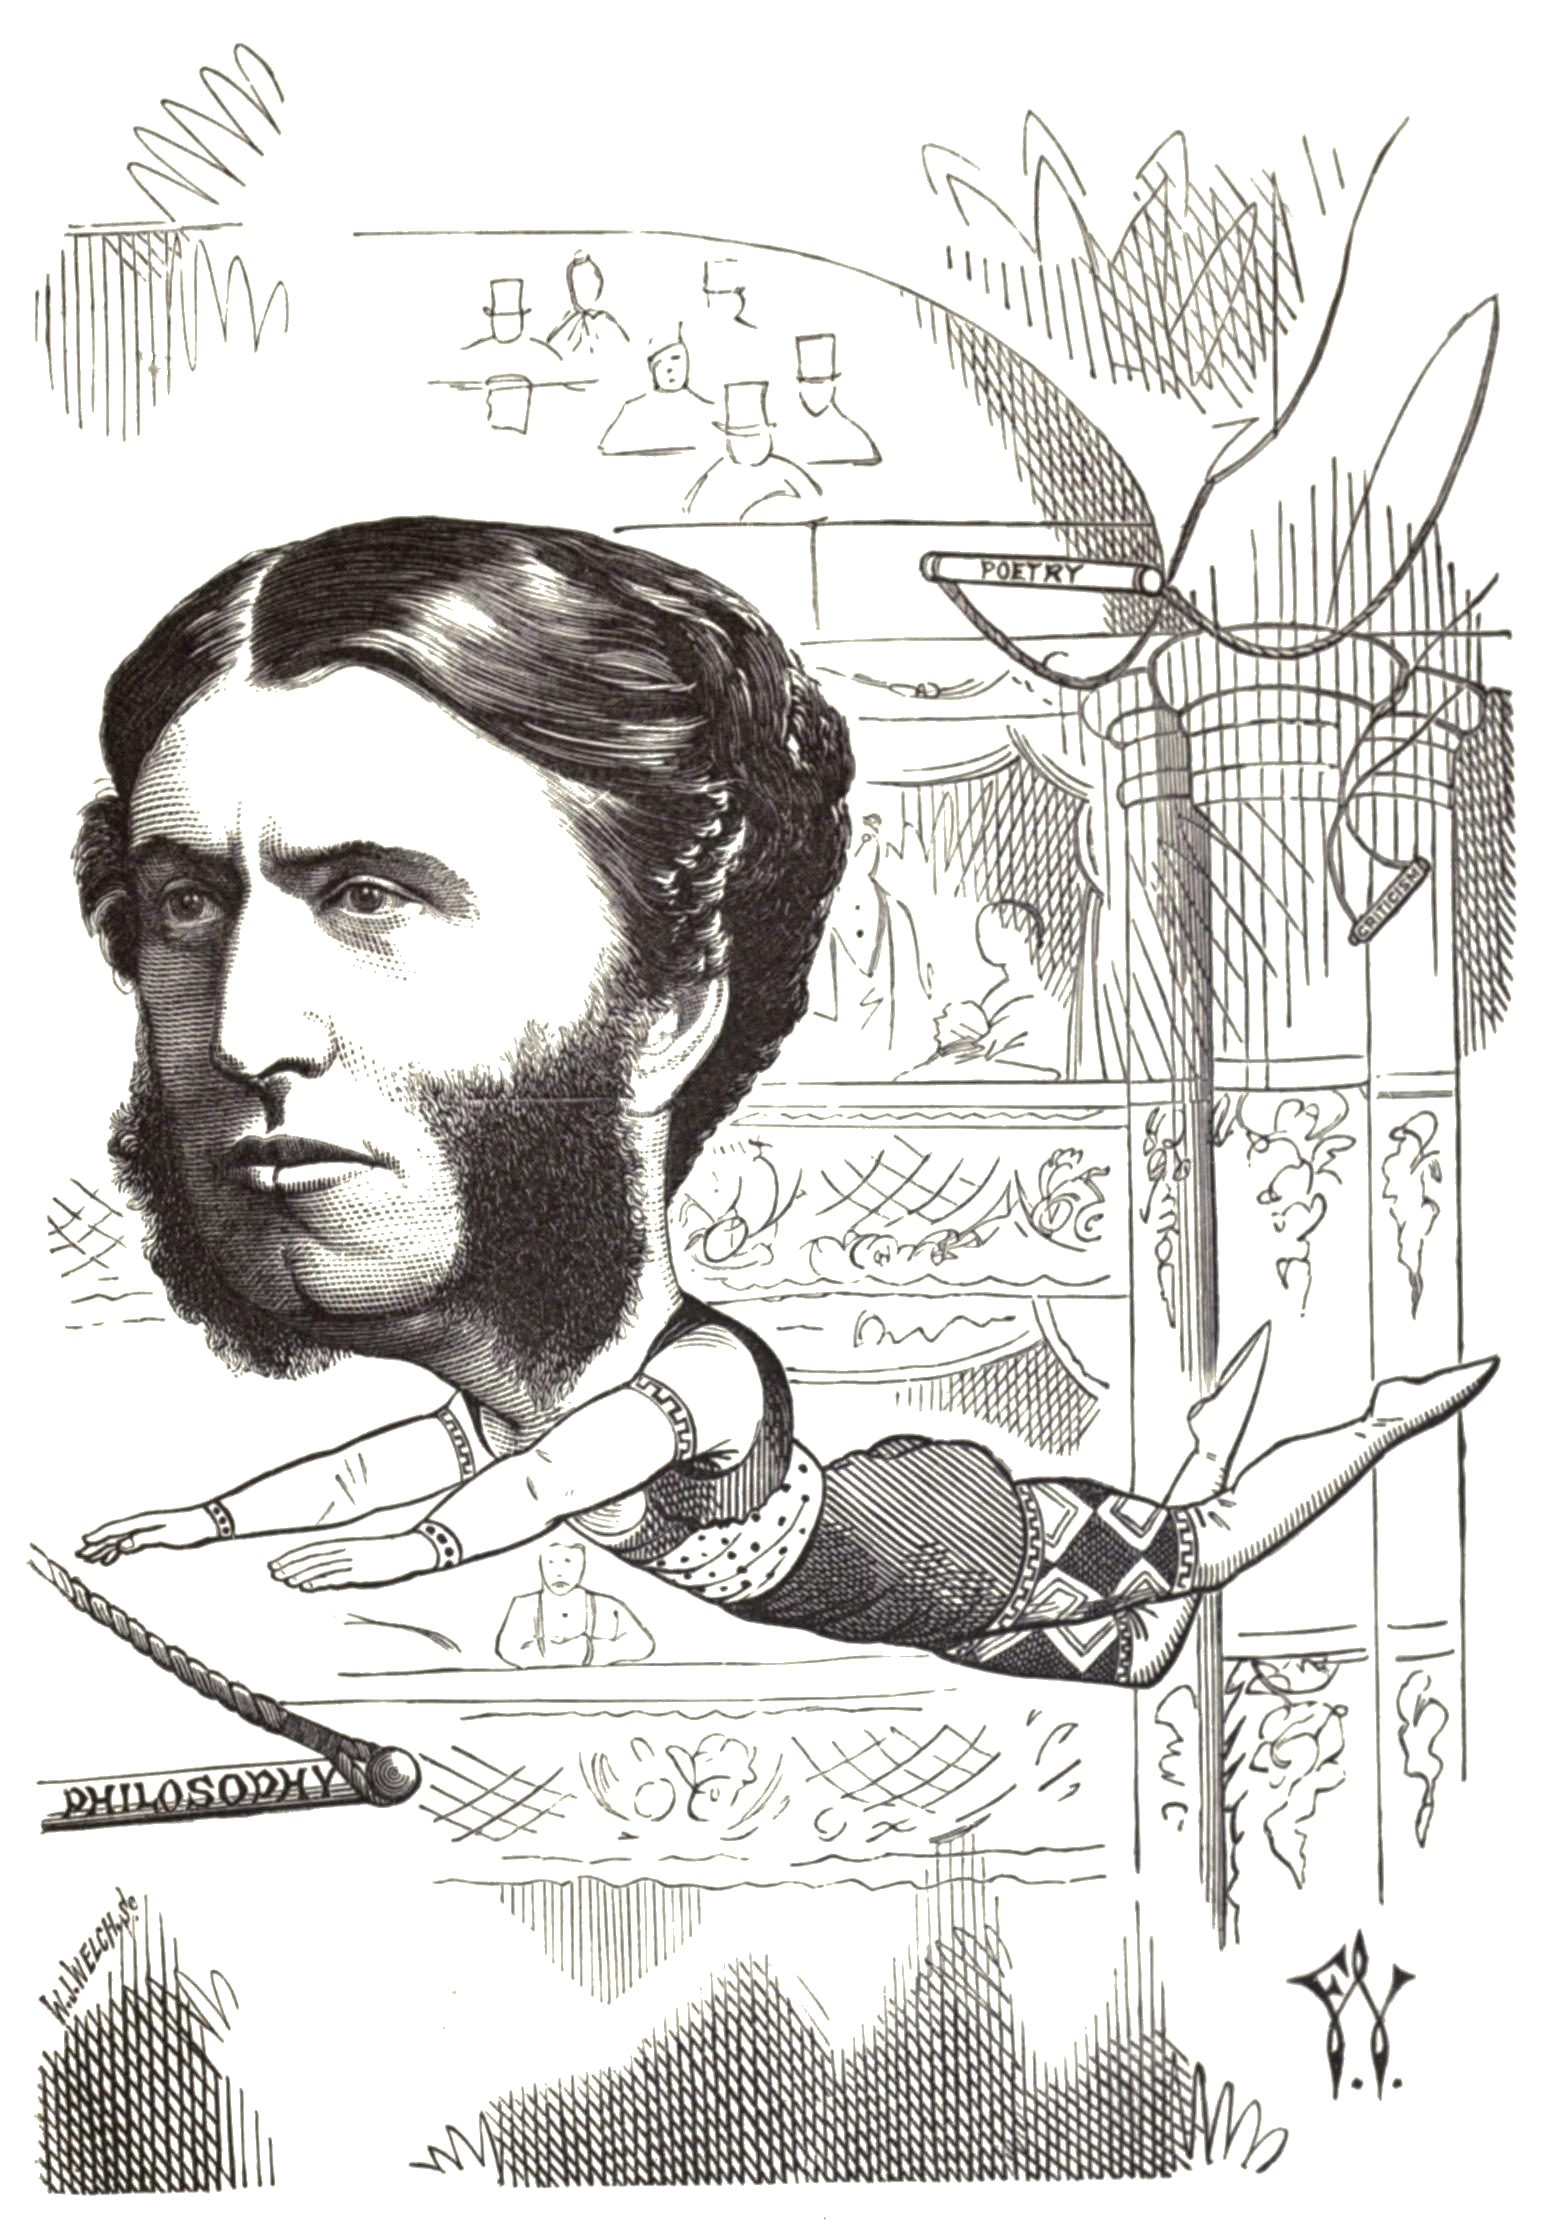 mathew arnold The volume of essays in criticism which had been collected by matthew arnold  from various periodicals before his death, and which has just been published.